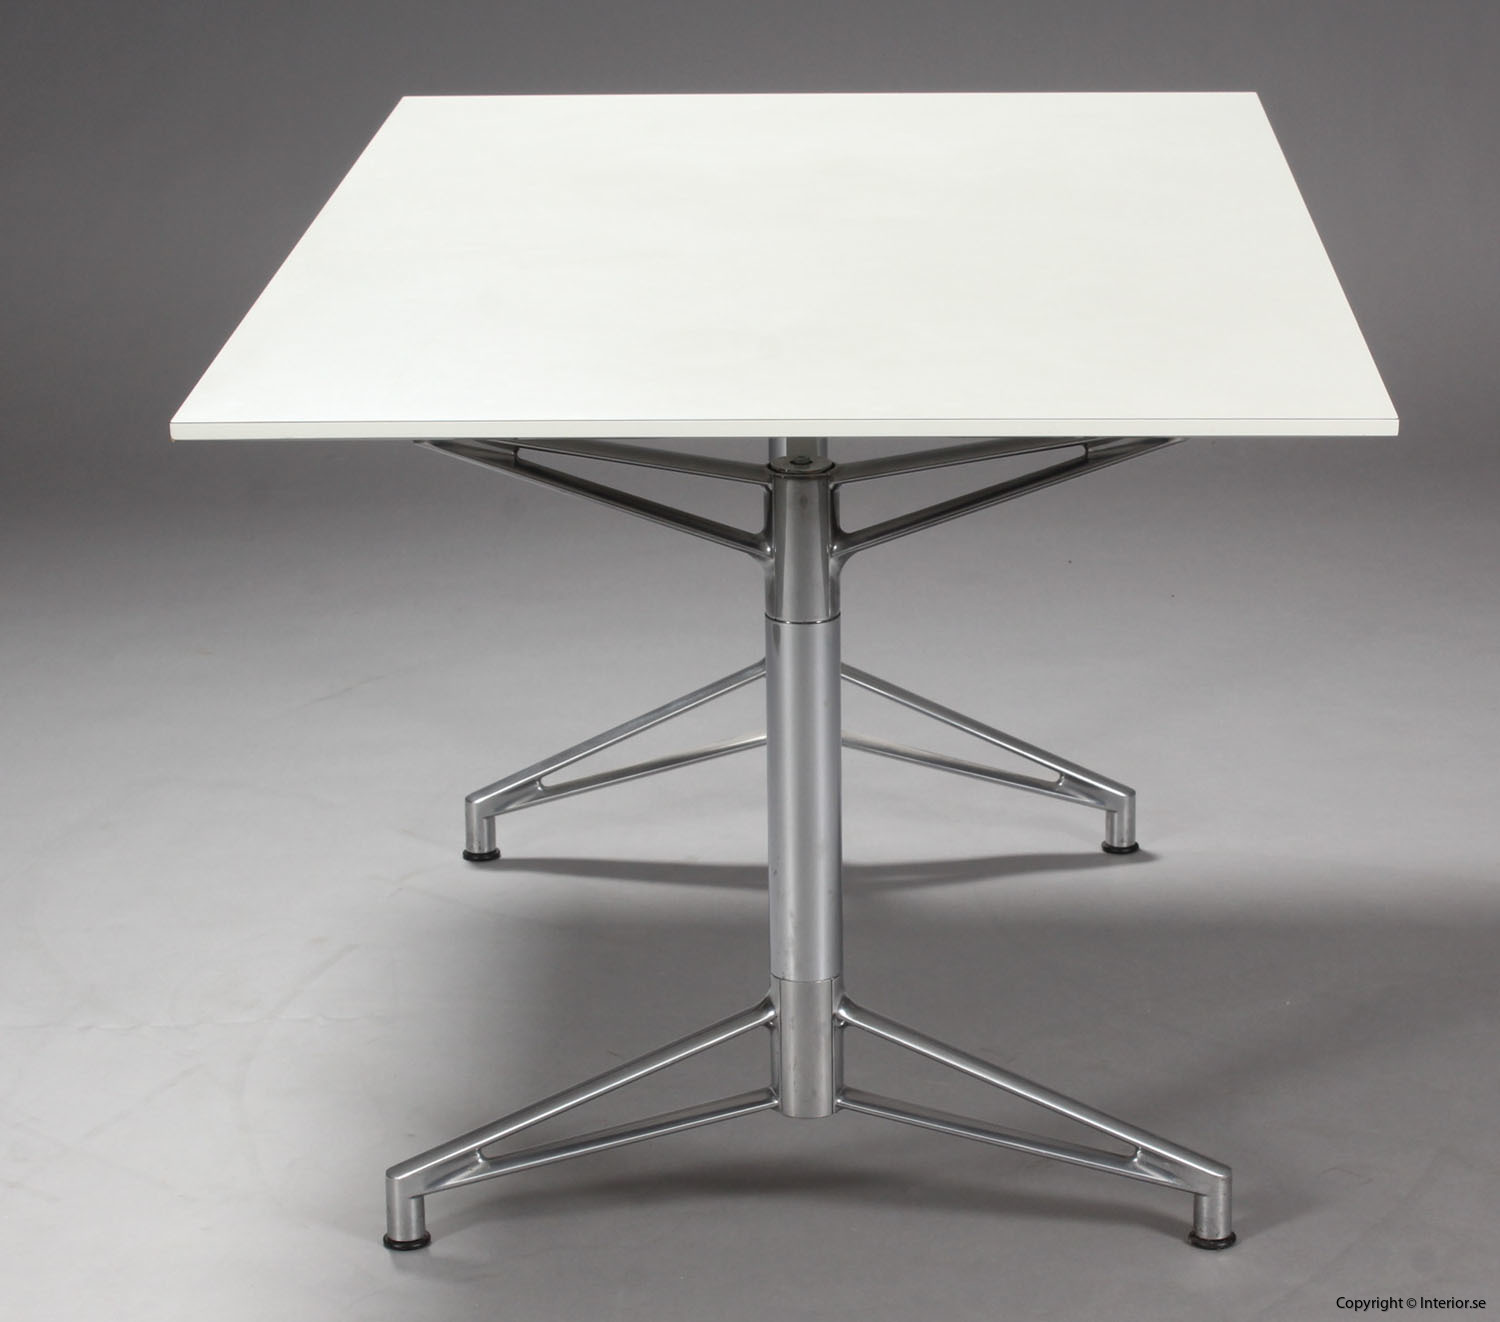 Konferensbord, Kusch & Co One Desk - 200 x 90 cm konferenztisch conference table 2